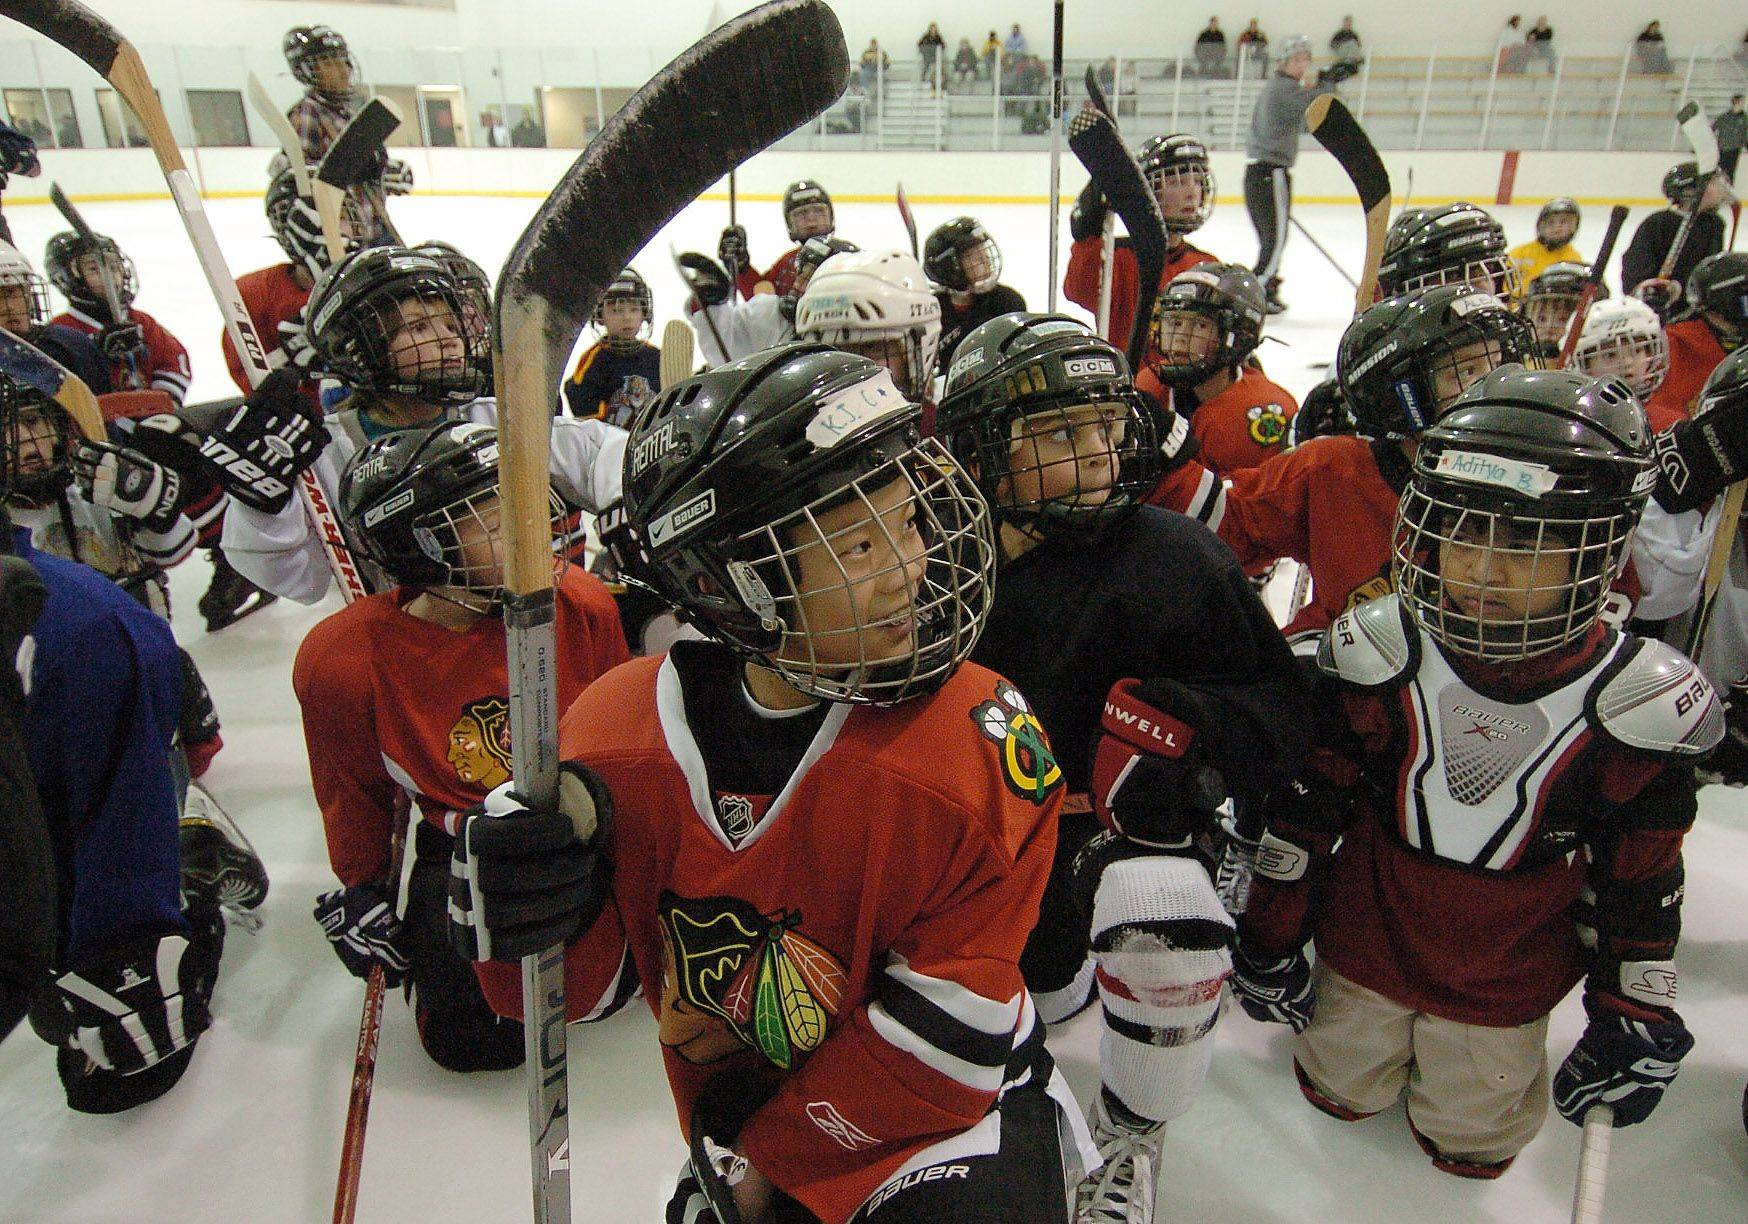 The increased diversity of the Hoffman Estates Park District's youth ice hockey programs reflects 2010 census data showing a surging suburban Asian population. Hockey, a sport that traditionally struggles with drawing minorities, now draws players like 10-year-old K.J. Choy of Hoffman Estates and his teammates, who listen to their coach during practice at the Triphahn Center.